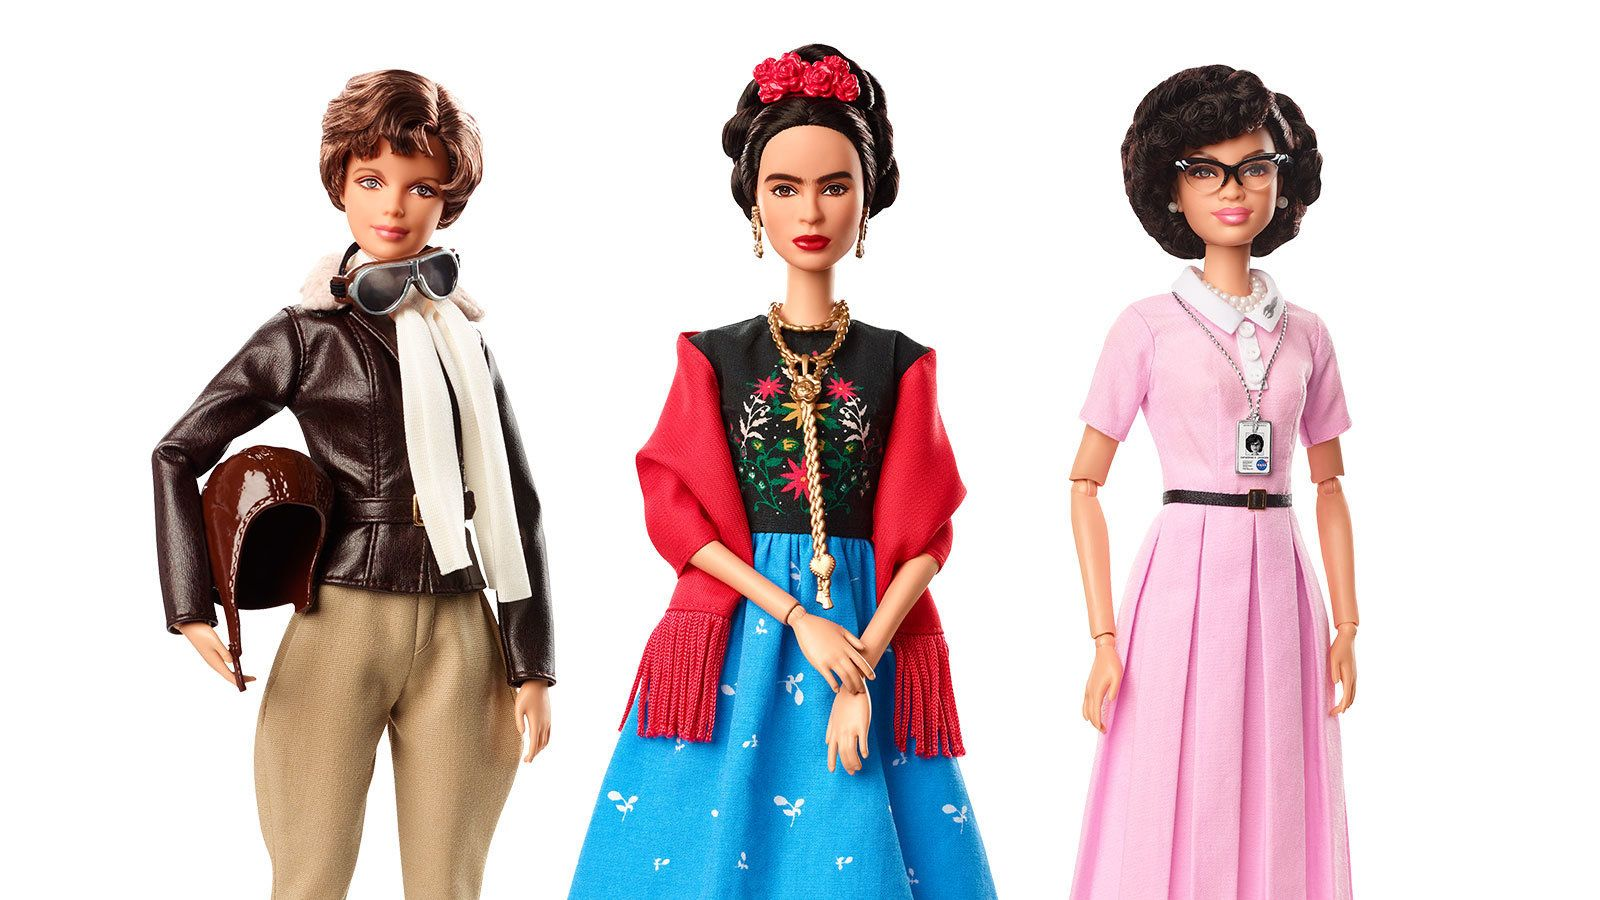 Barbie                   Amelia Earhart Frida Kahlo and Katherine Johnson- in Barbie form